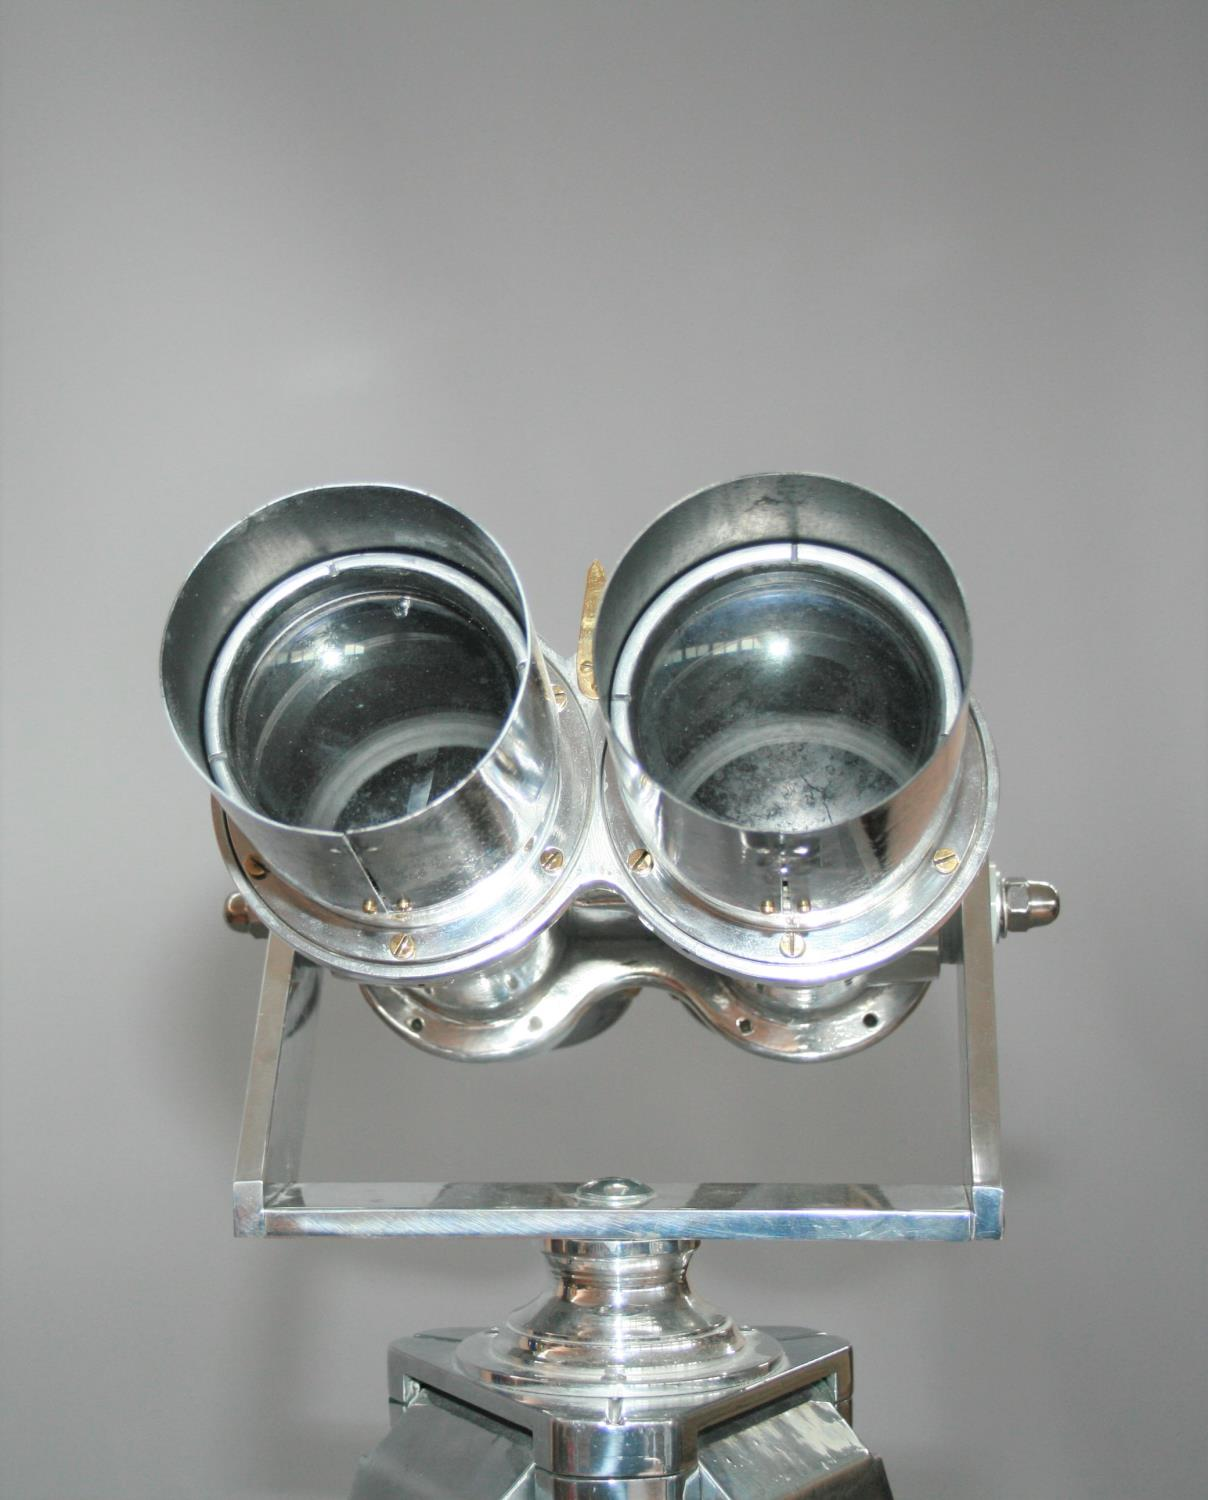 Exceptional pair of 1945 chrome binoculars from WW2 Japanese Aircraft carrier with accompanying - Image 4 of 7